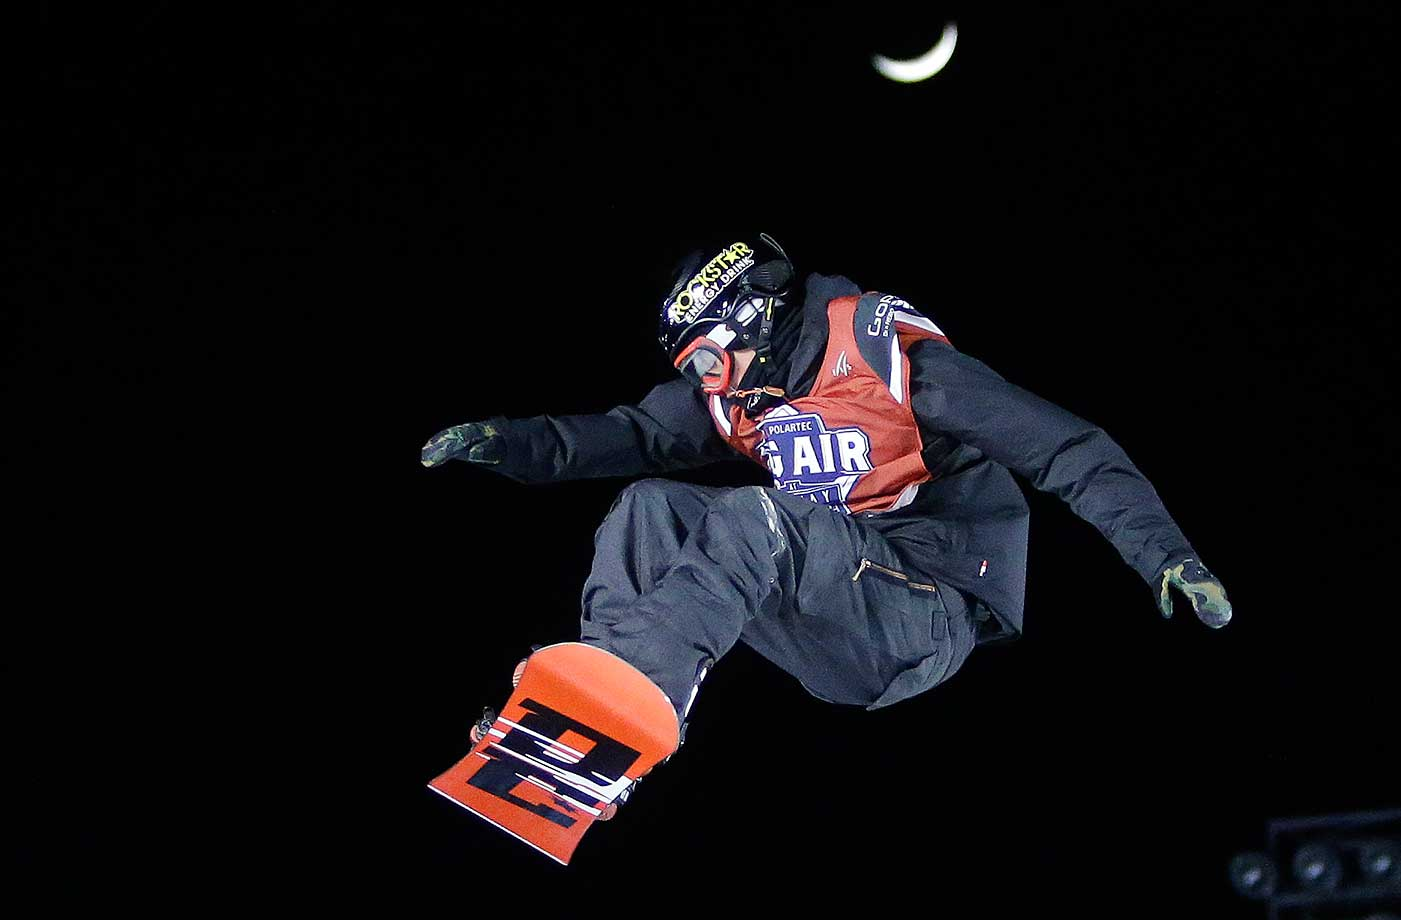 Snowboarder Mons Roysland of Norway  jumps with the moon behind during the Big Air at Fenway Park skiing and snowboarding event.